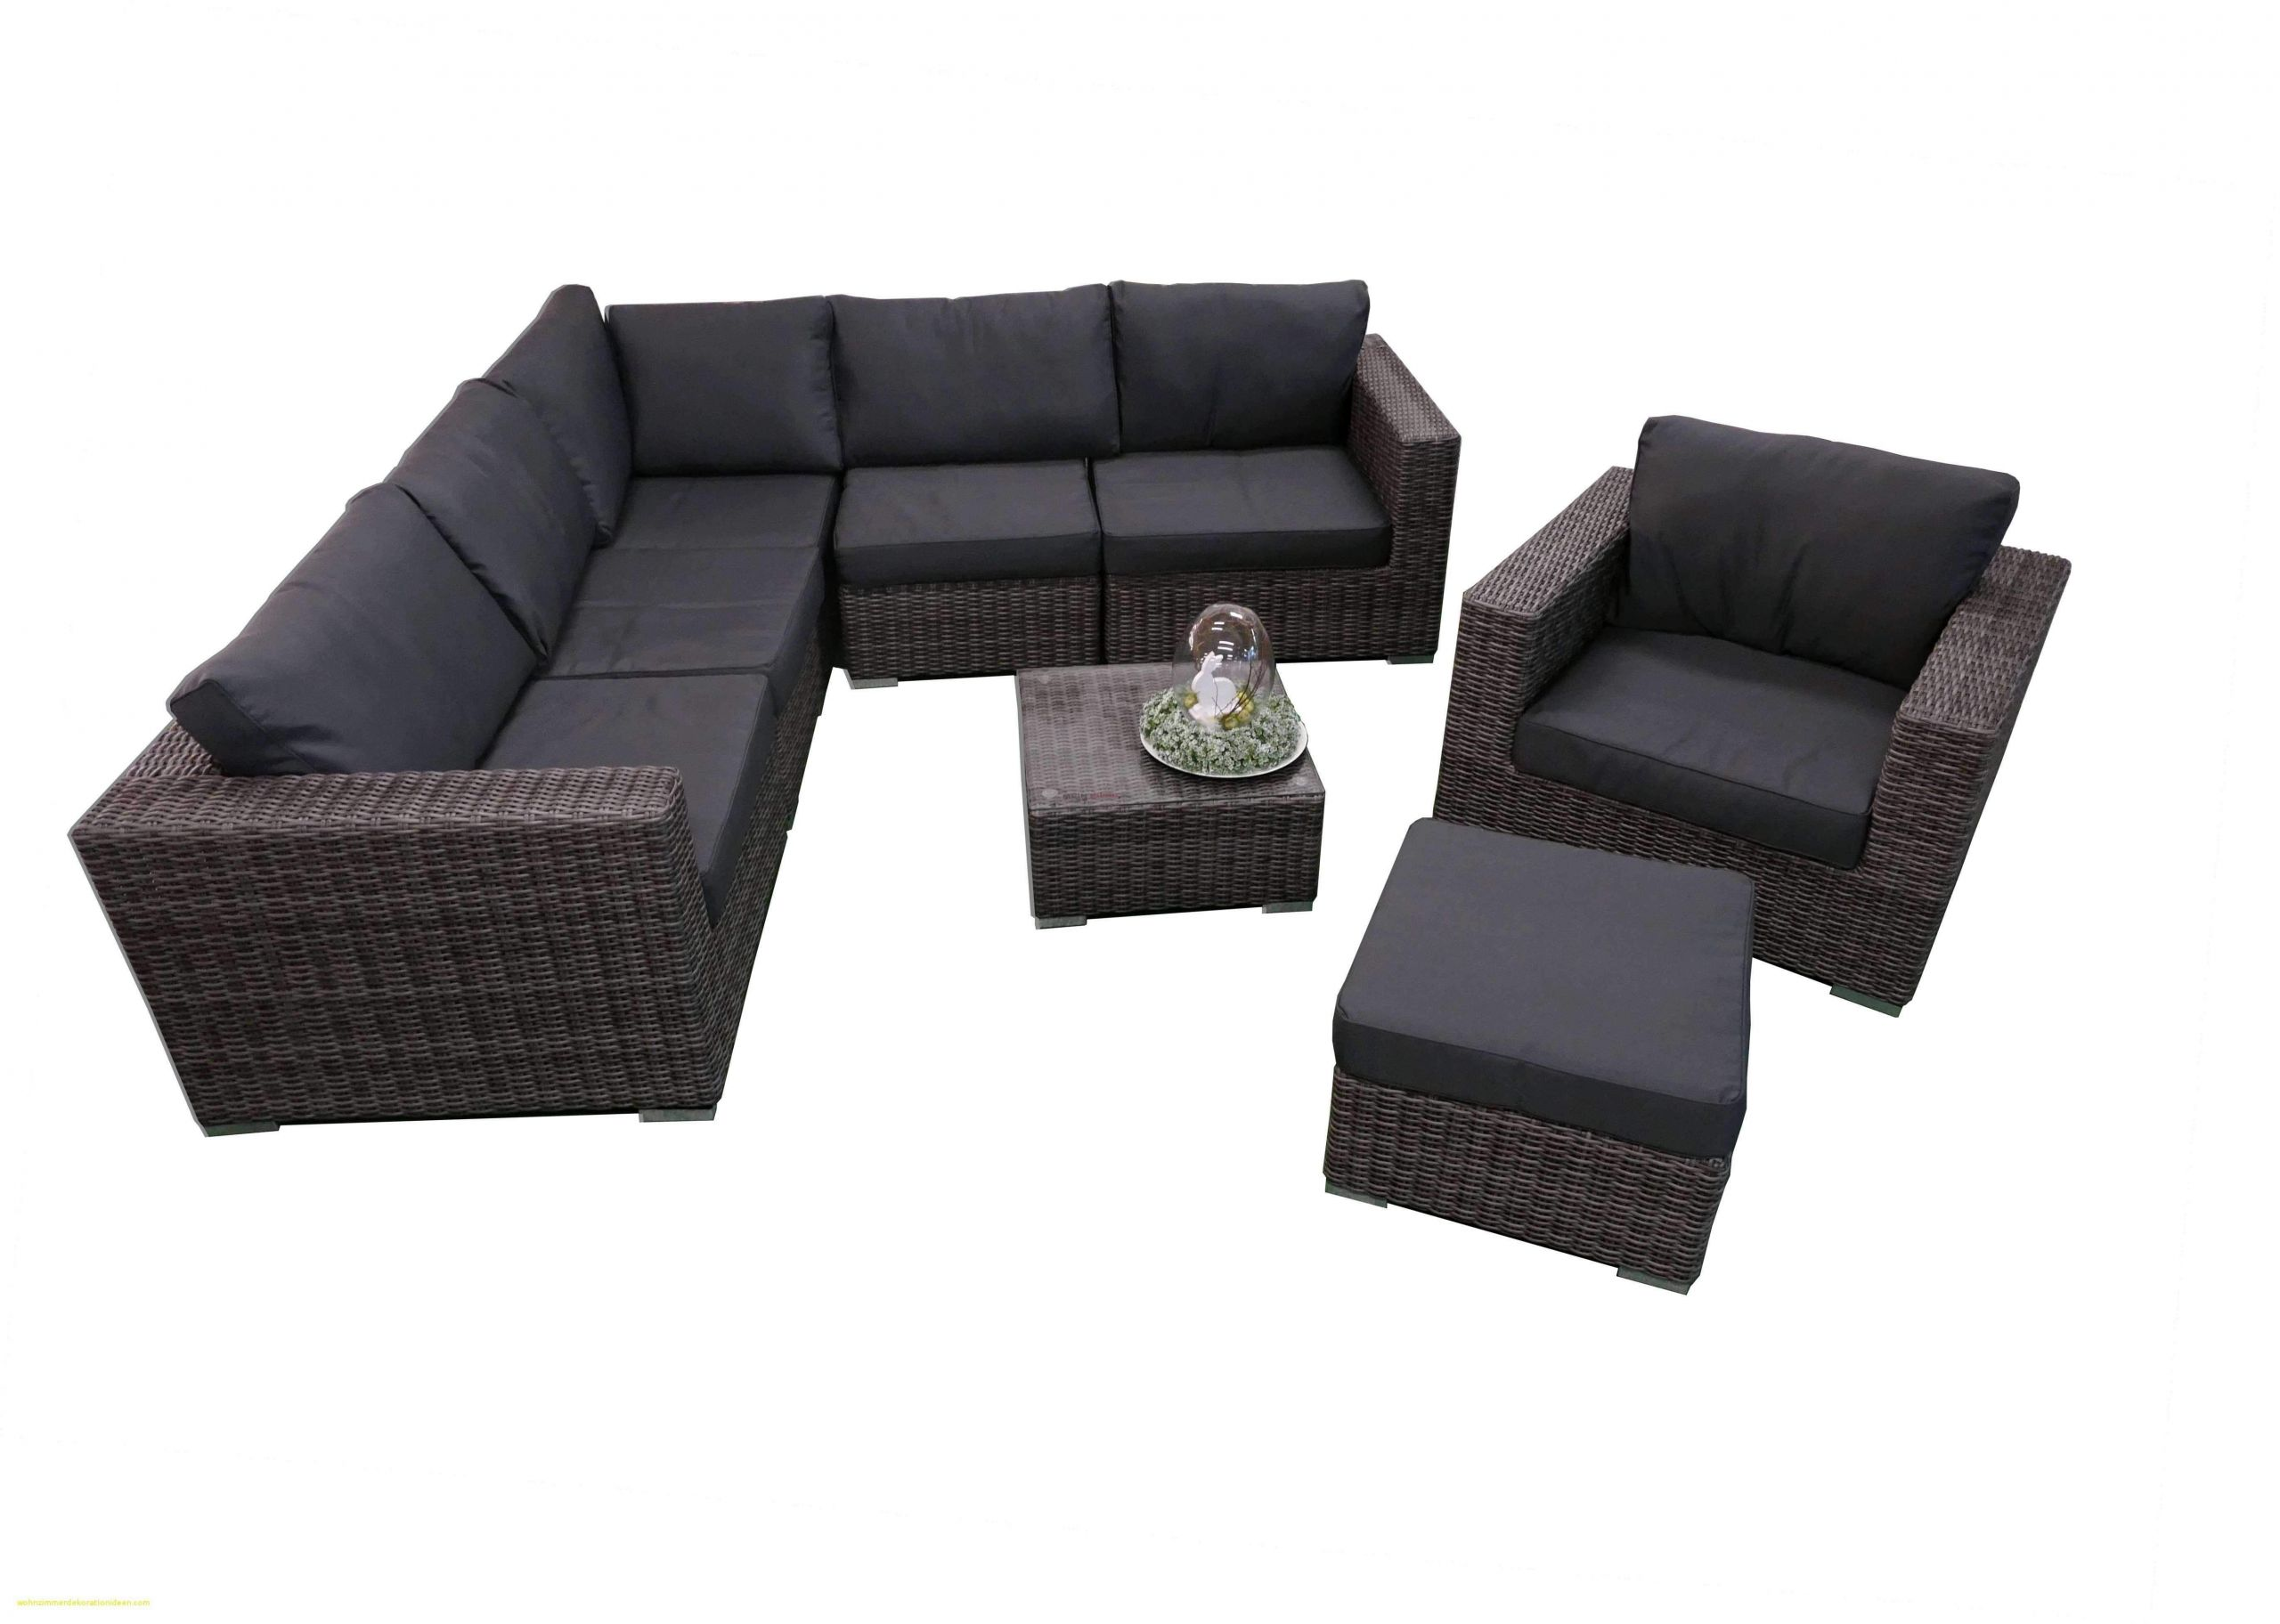 couch rosa einzigartig rosa couch elegant wohnzimmer couch grau ideen von wohnzimmer rosa grau of wohnzimmer rosa grau